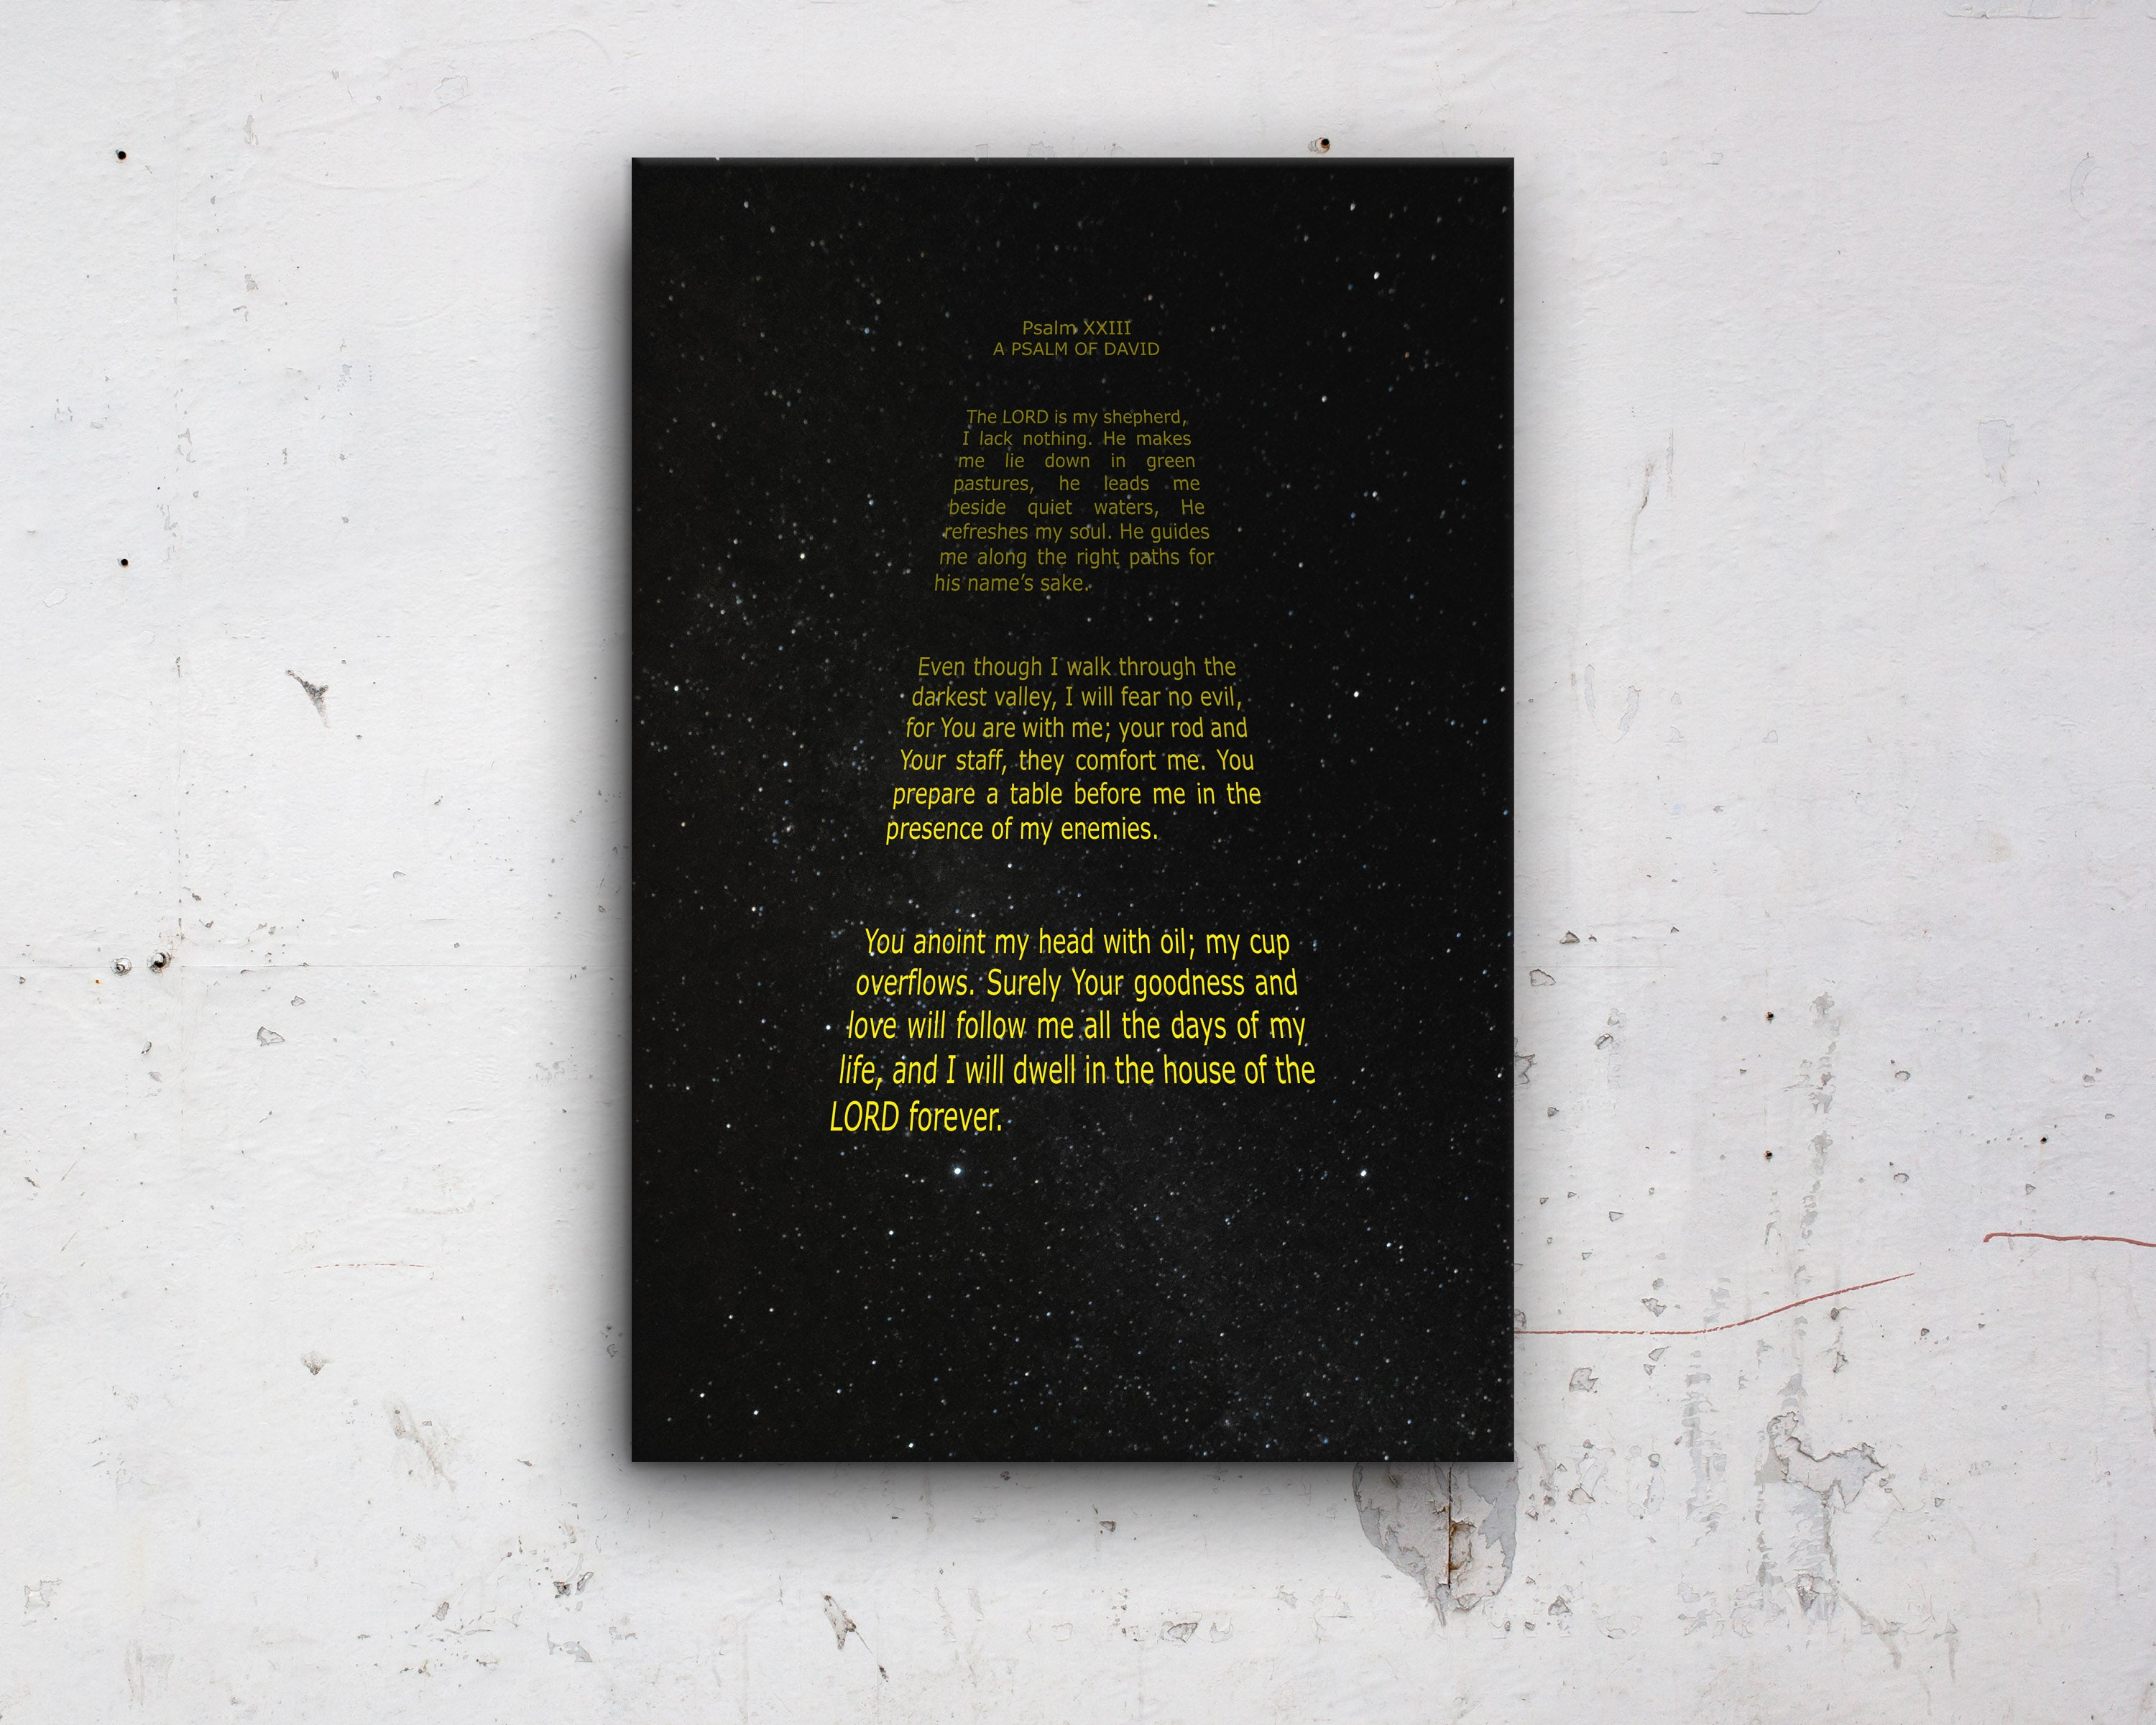 Psalm 23: Custom Bible Verse Star Wars Fan Art - Hunnycomb Proverbs - Wedding gift ideas - paper anniversary gifts